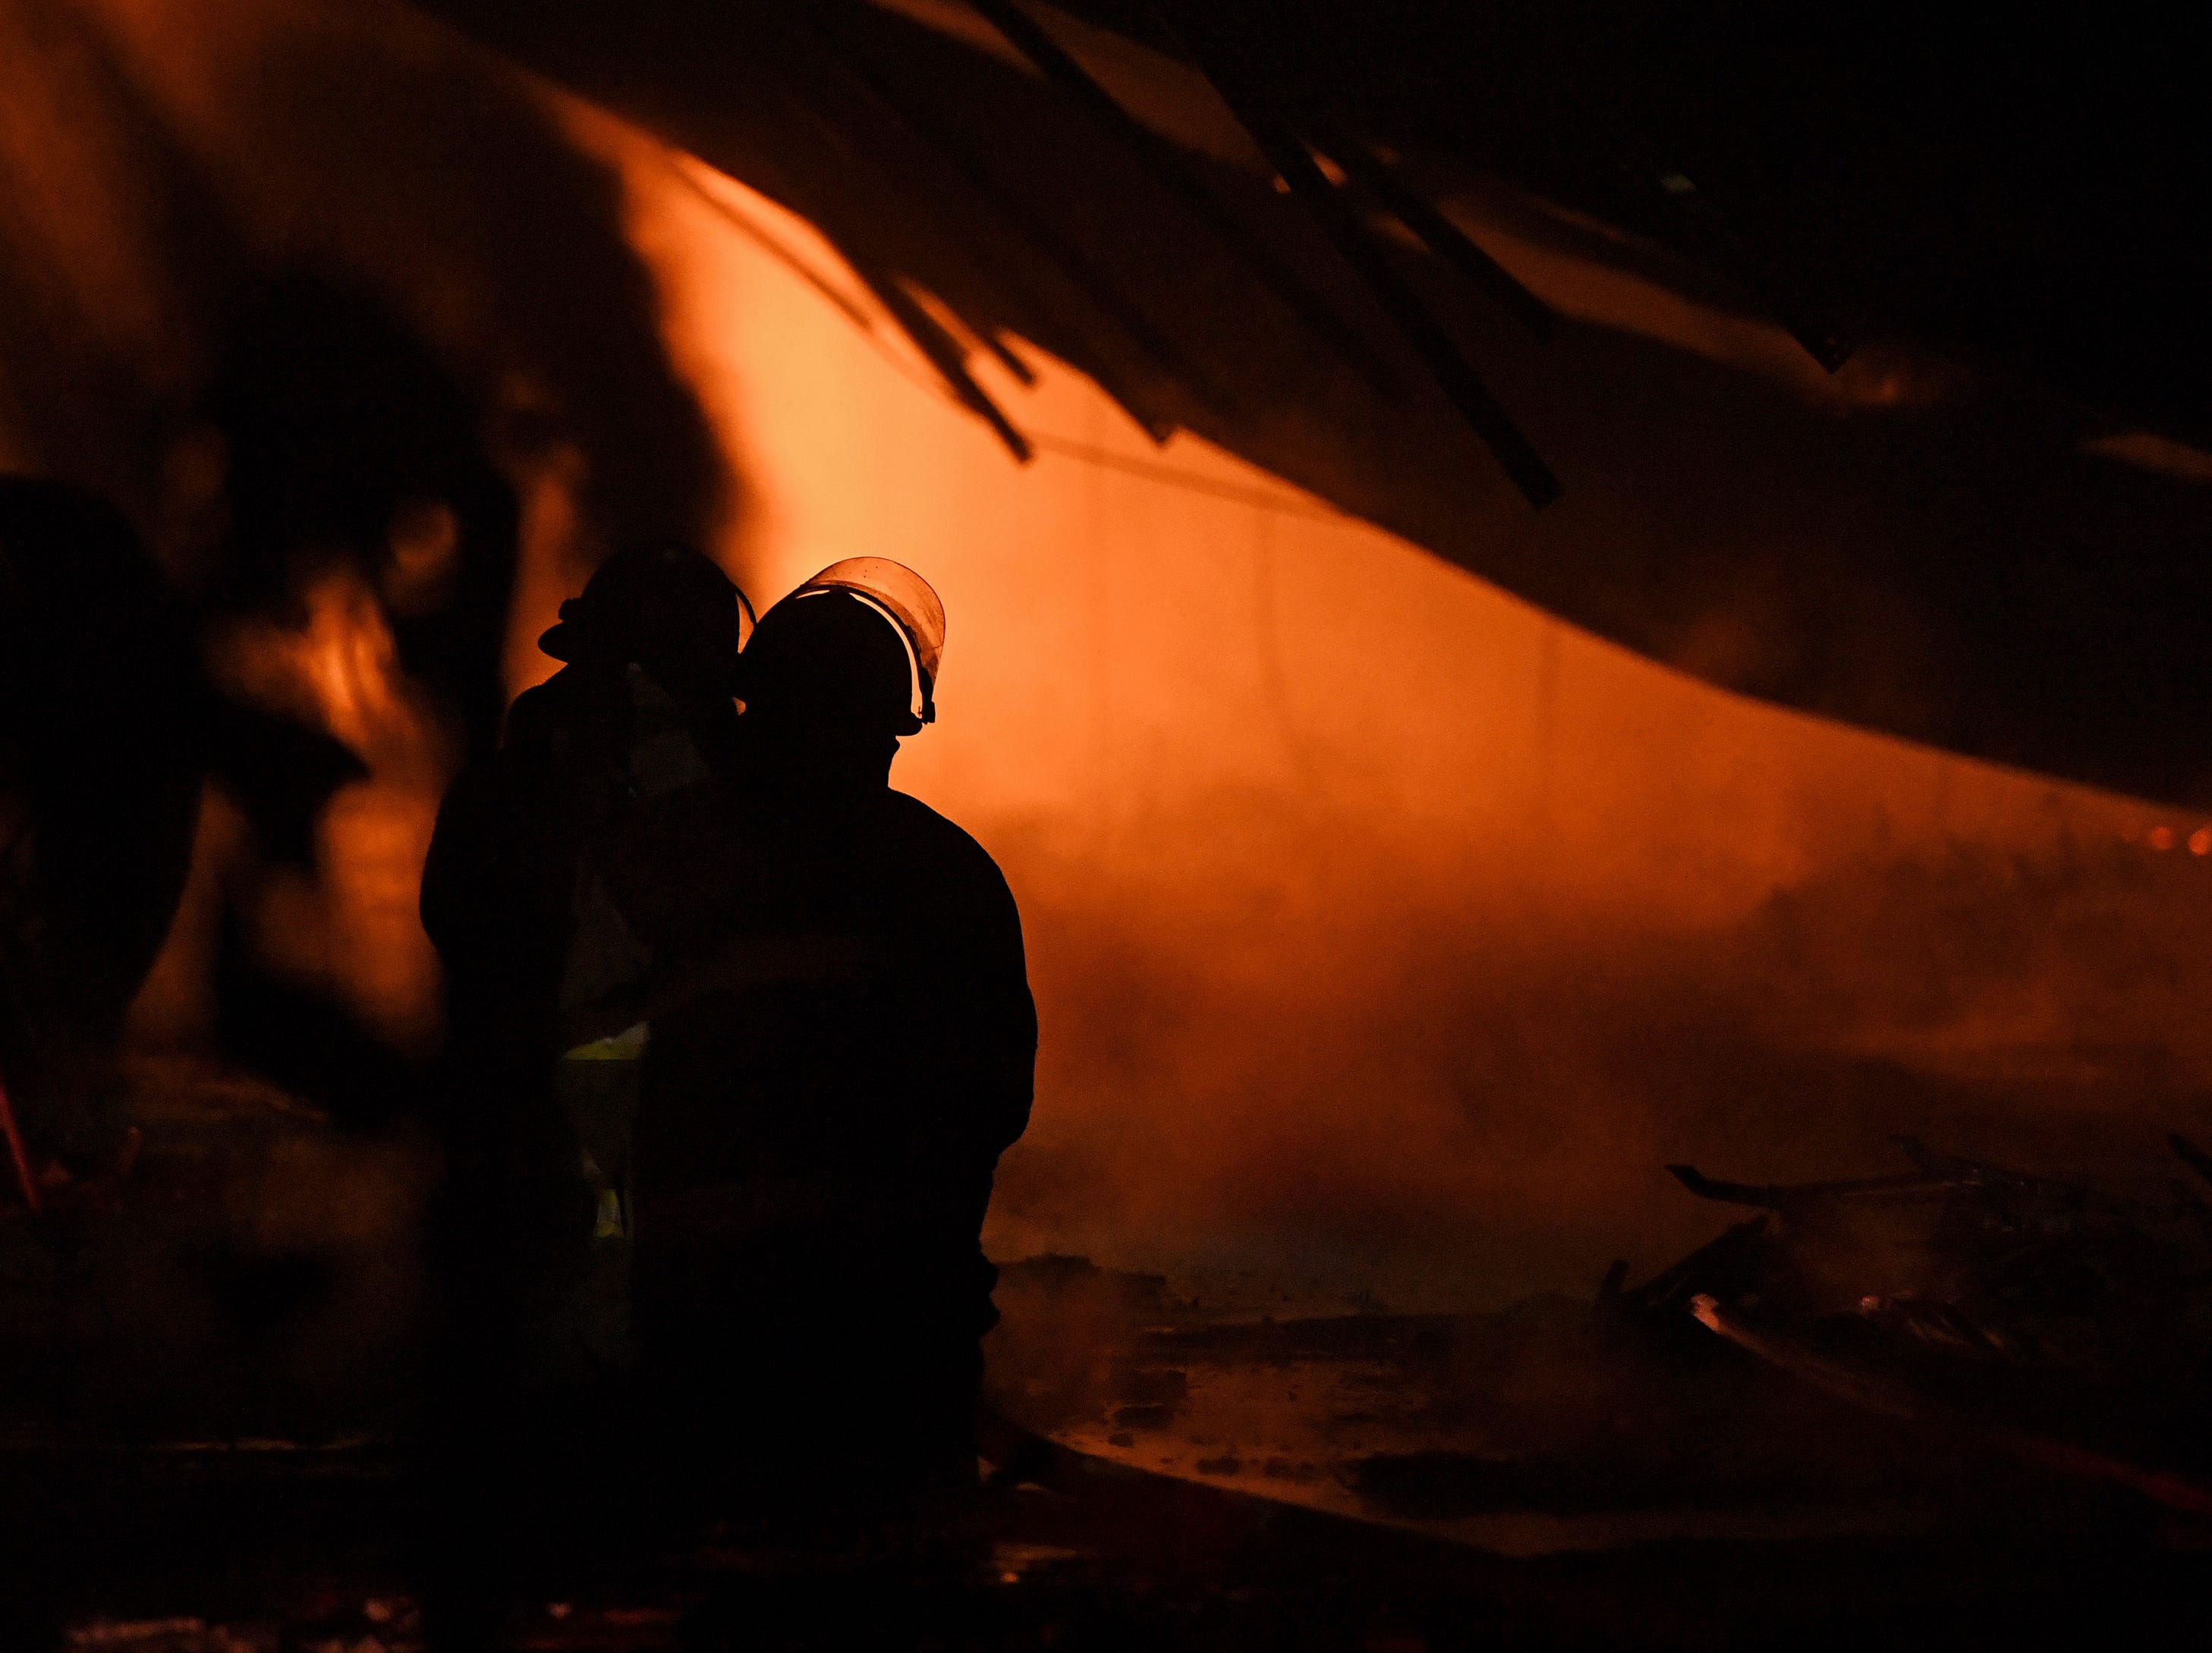 Firefighters work to extinguish a fire at American Furniture Manufacturing in Ecru, Miss., Thursday, Feb. 14, 2019. The fire was the third fire at the facility in just over one year and is still under investigation.